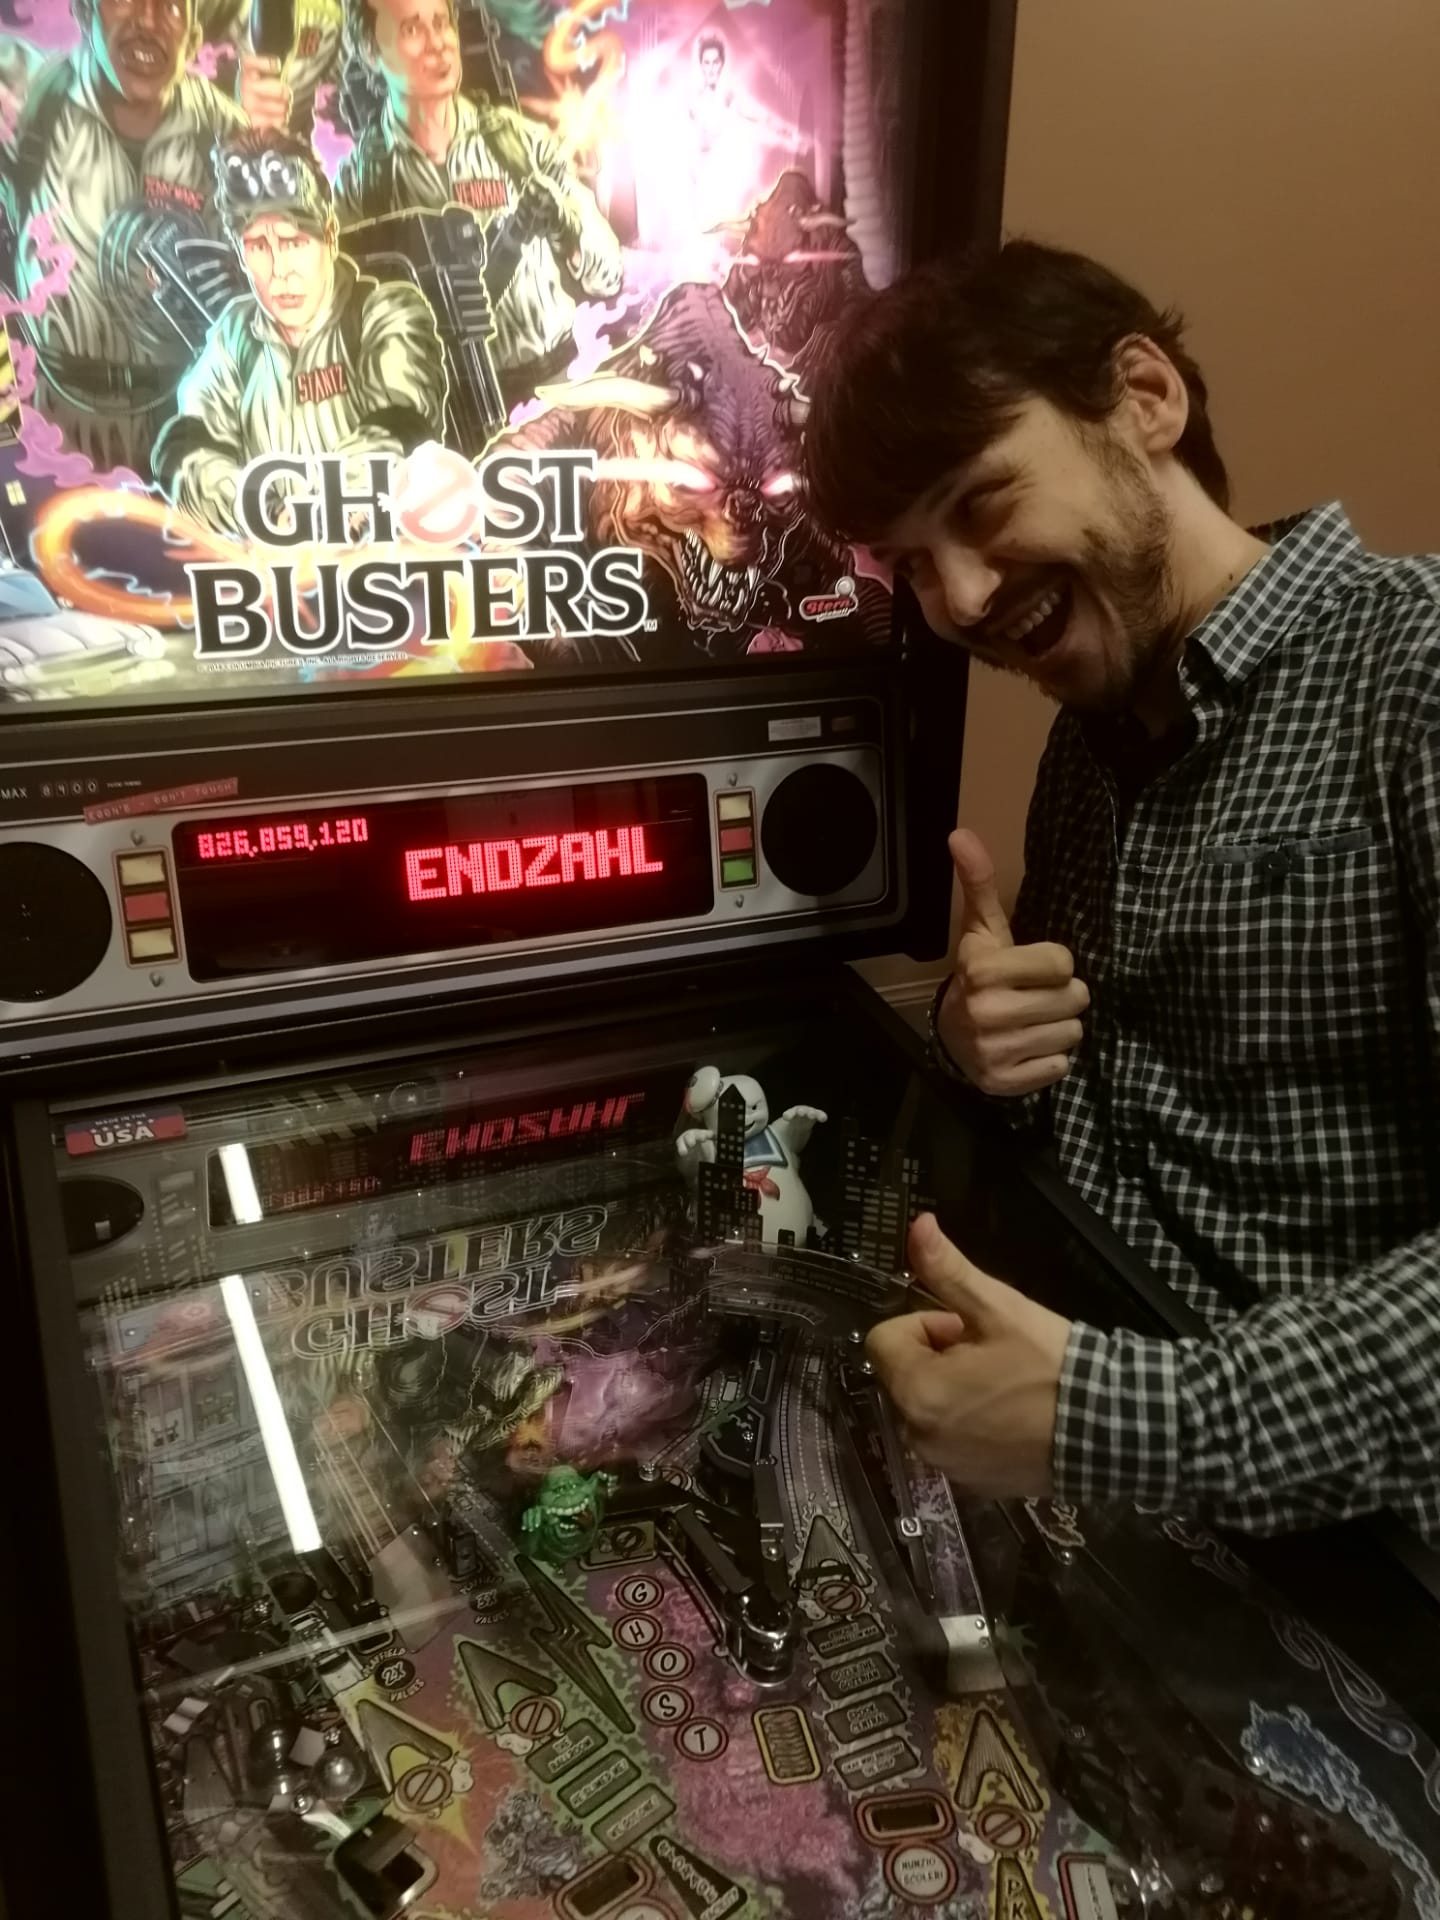 floese: Ghostbusters (Pinball: 3 Balls) 826,859,120 points on 2019-09-09 10:07:46